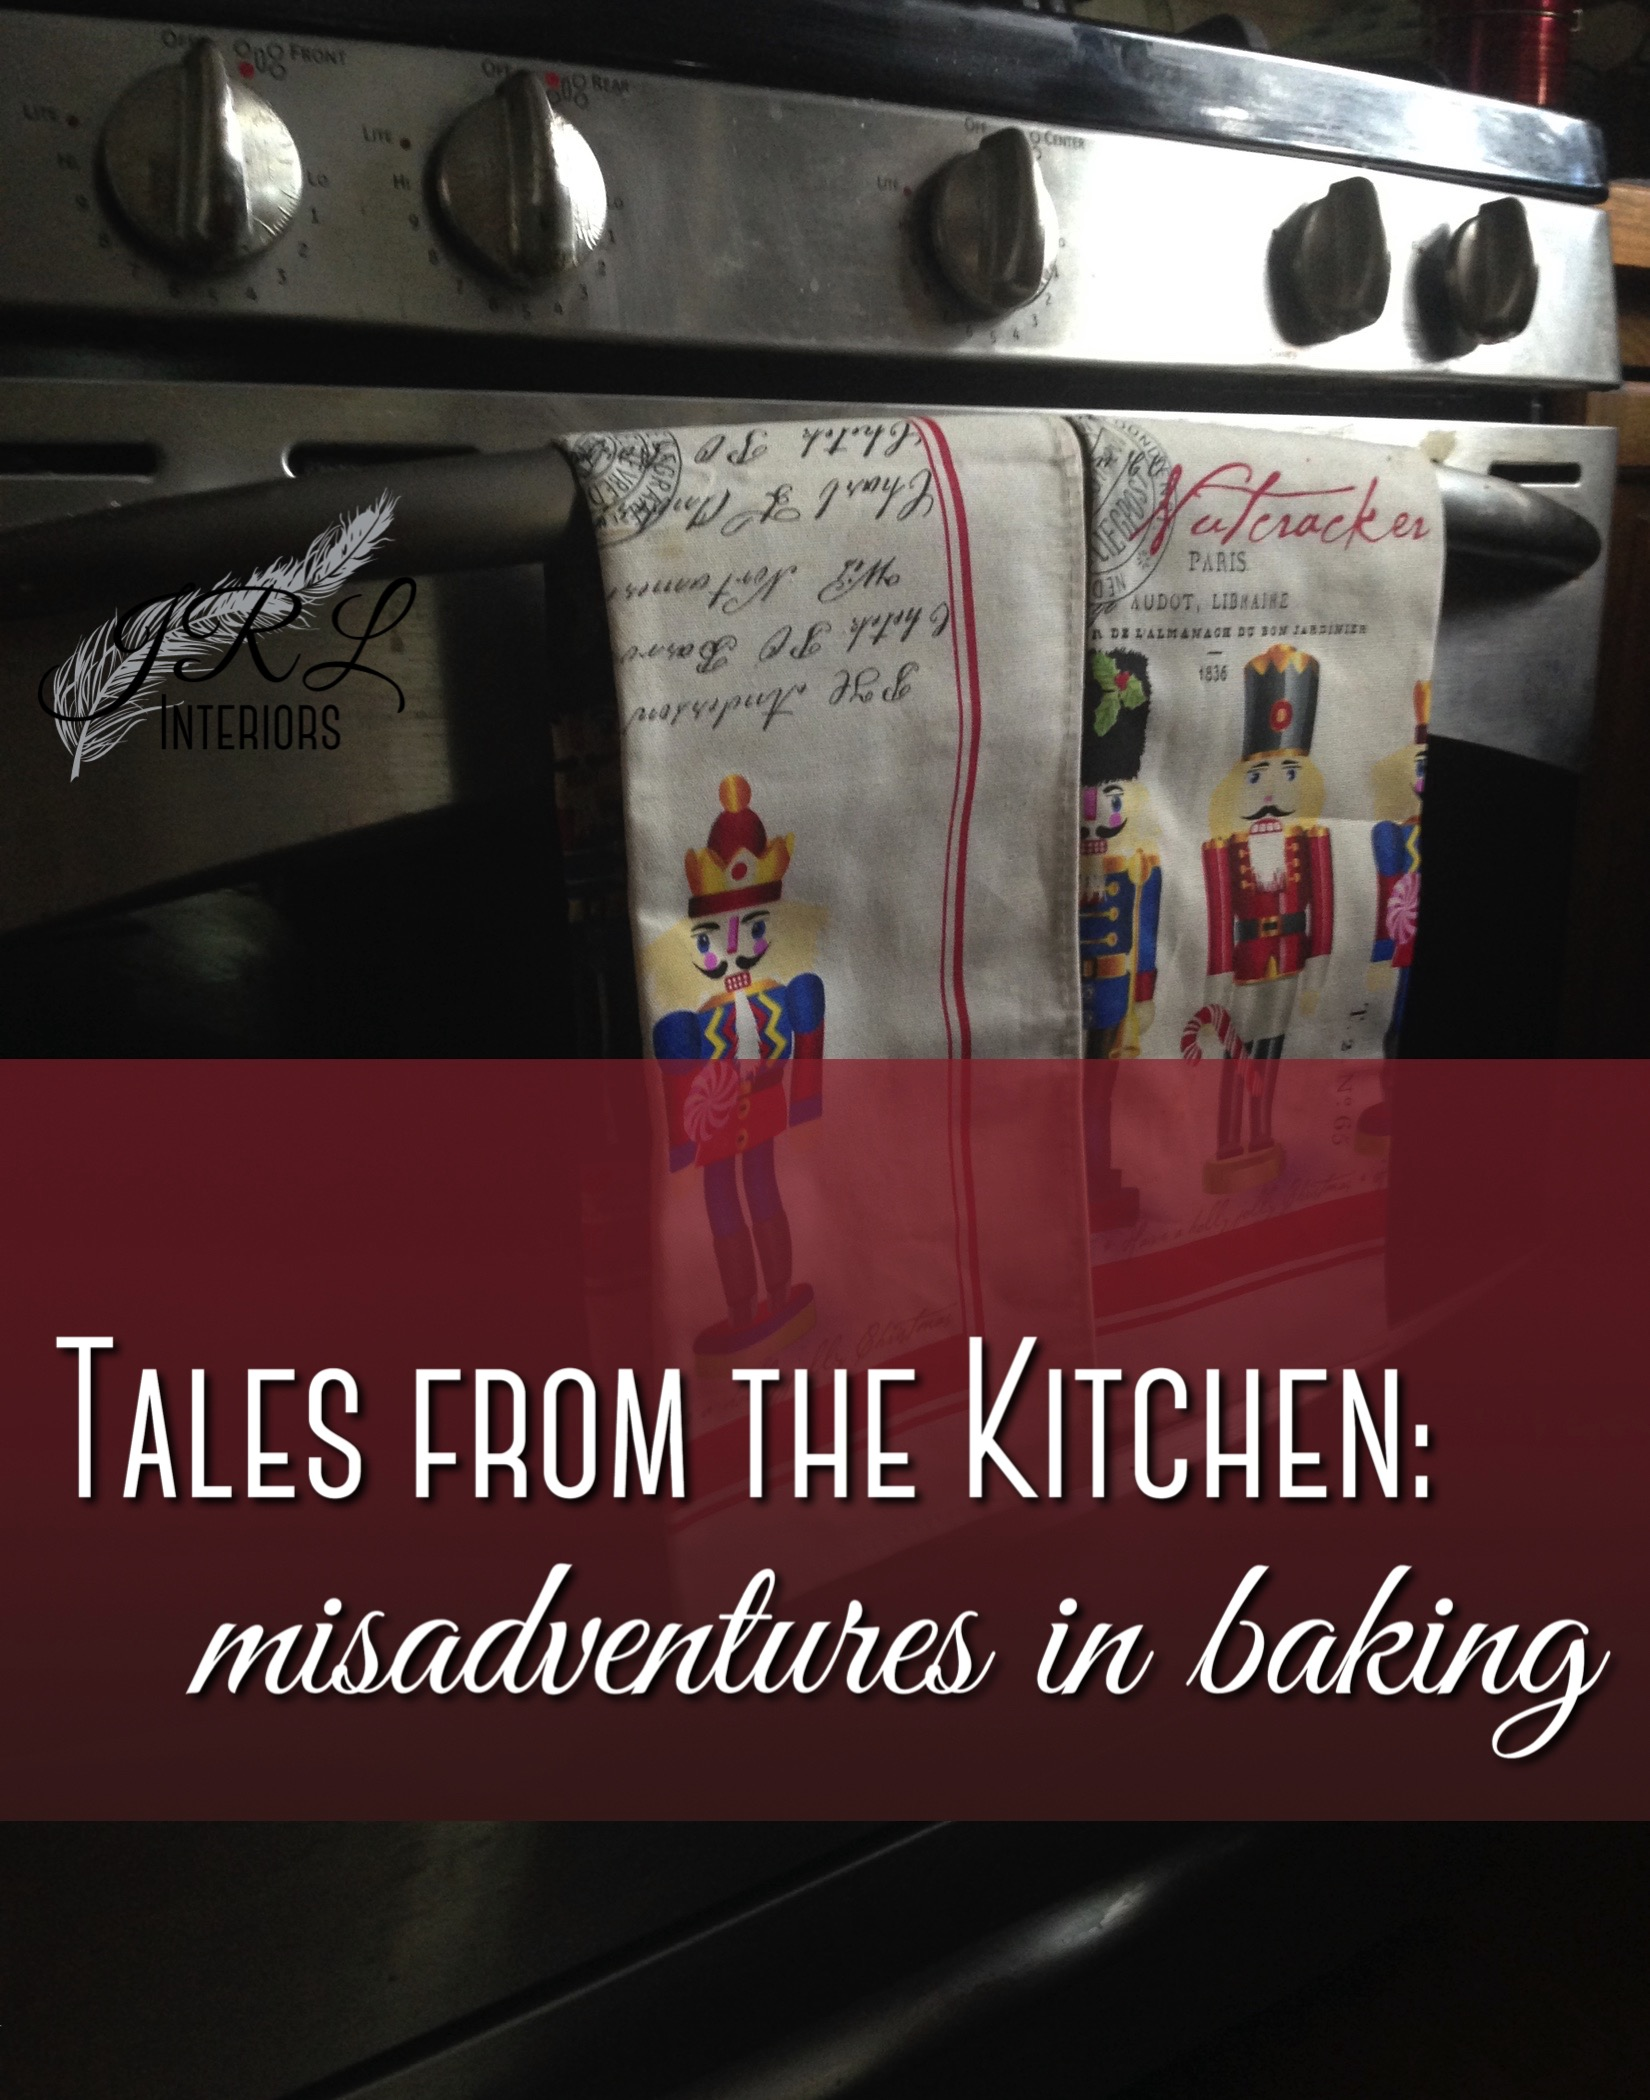 Tales-from-the-Kitchen-Baking-Misadventures-1.jpg